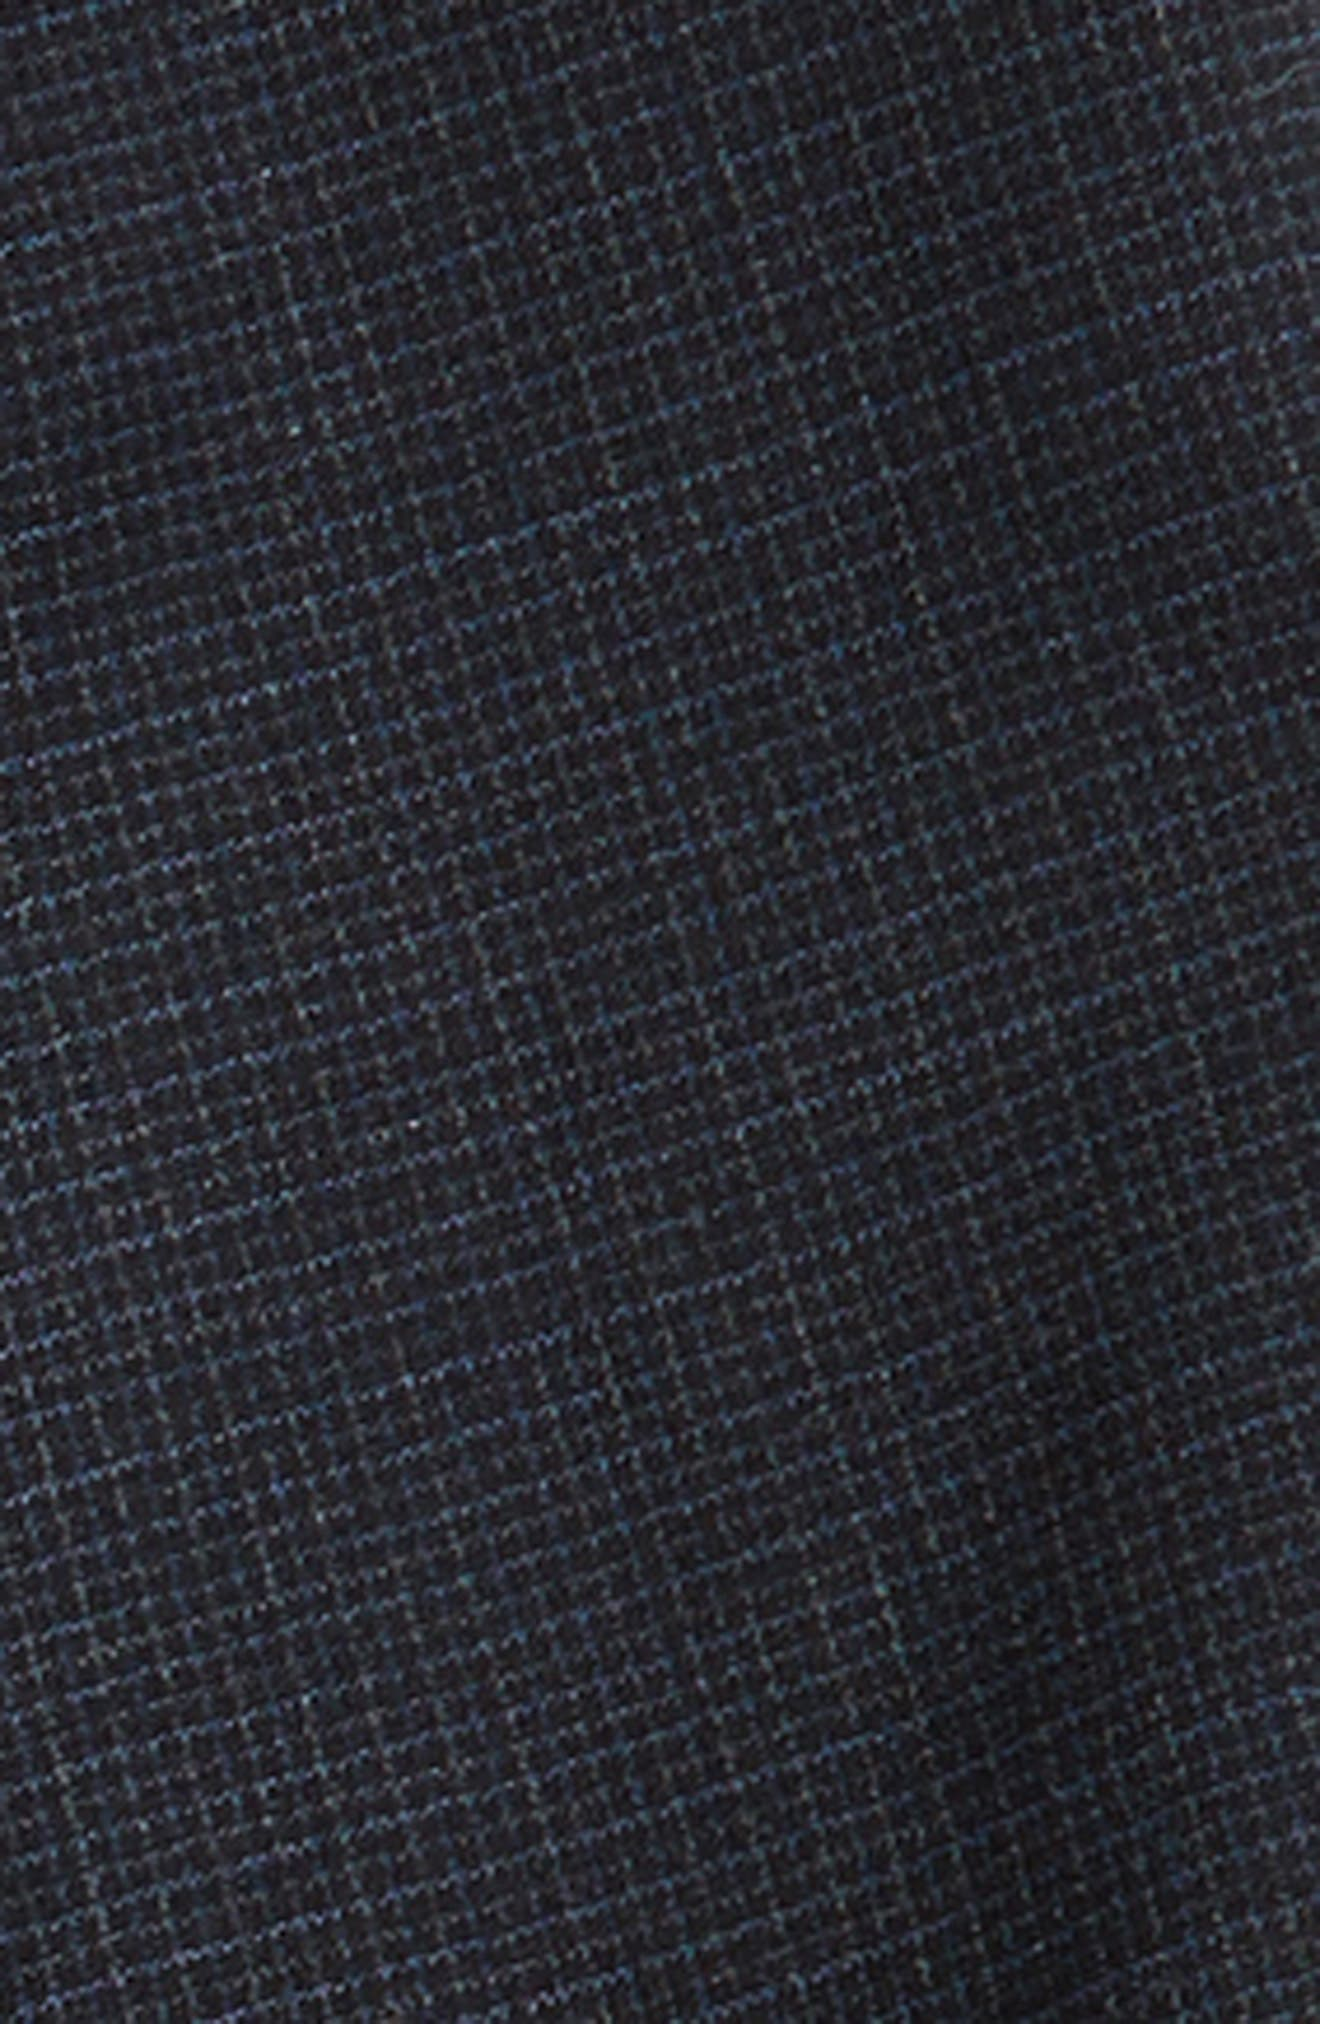 Micro Check Wool Suit,                             Alternate thumbnail 2, color,                             032